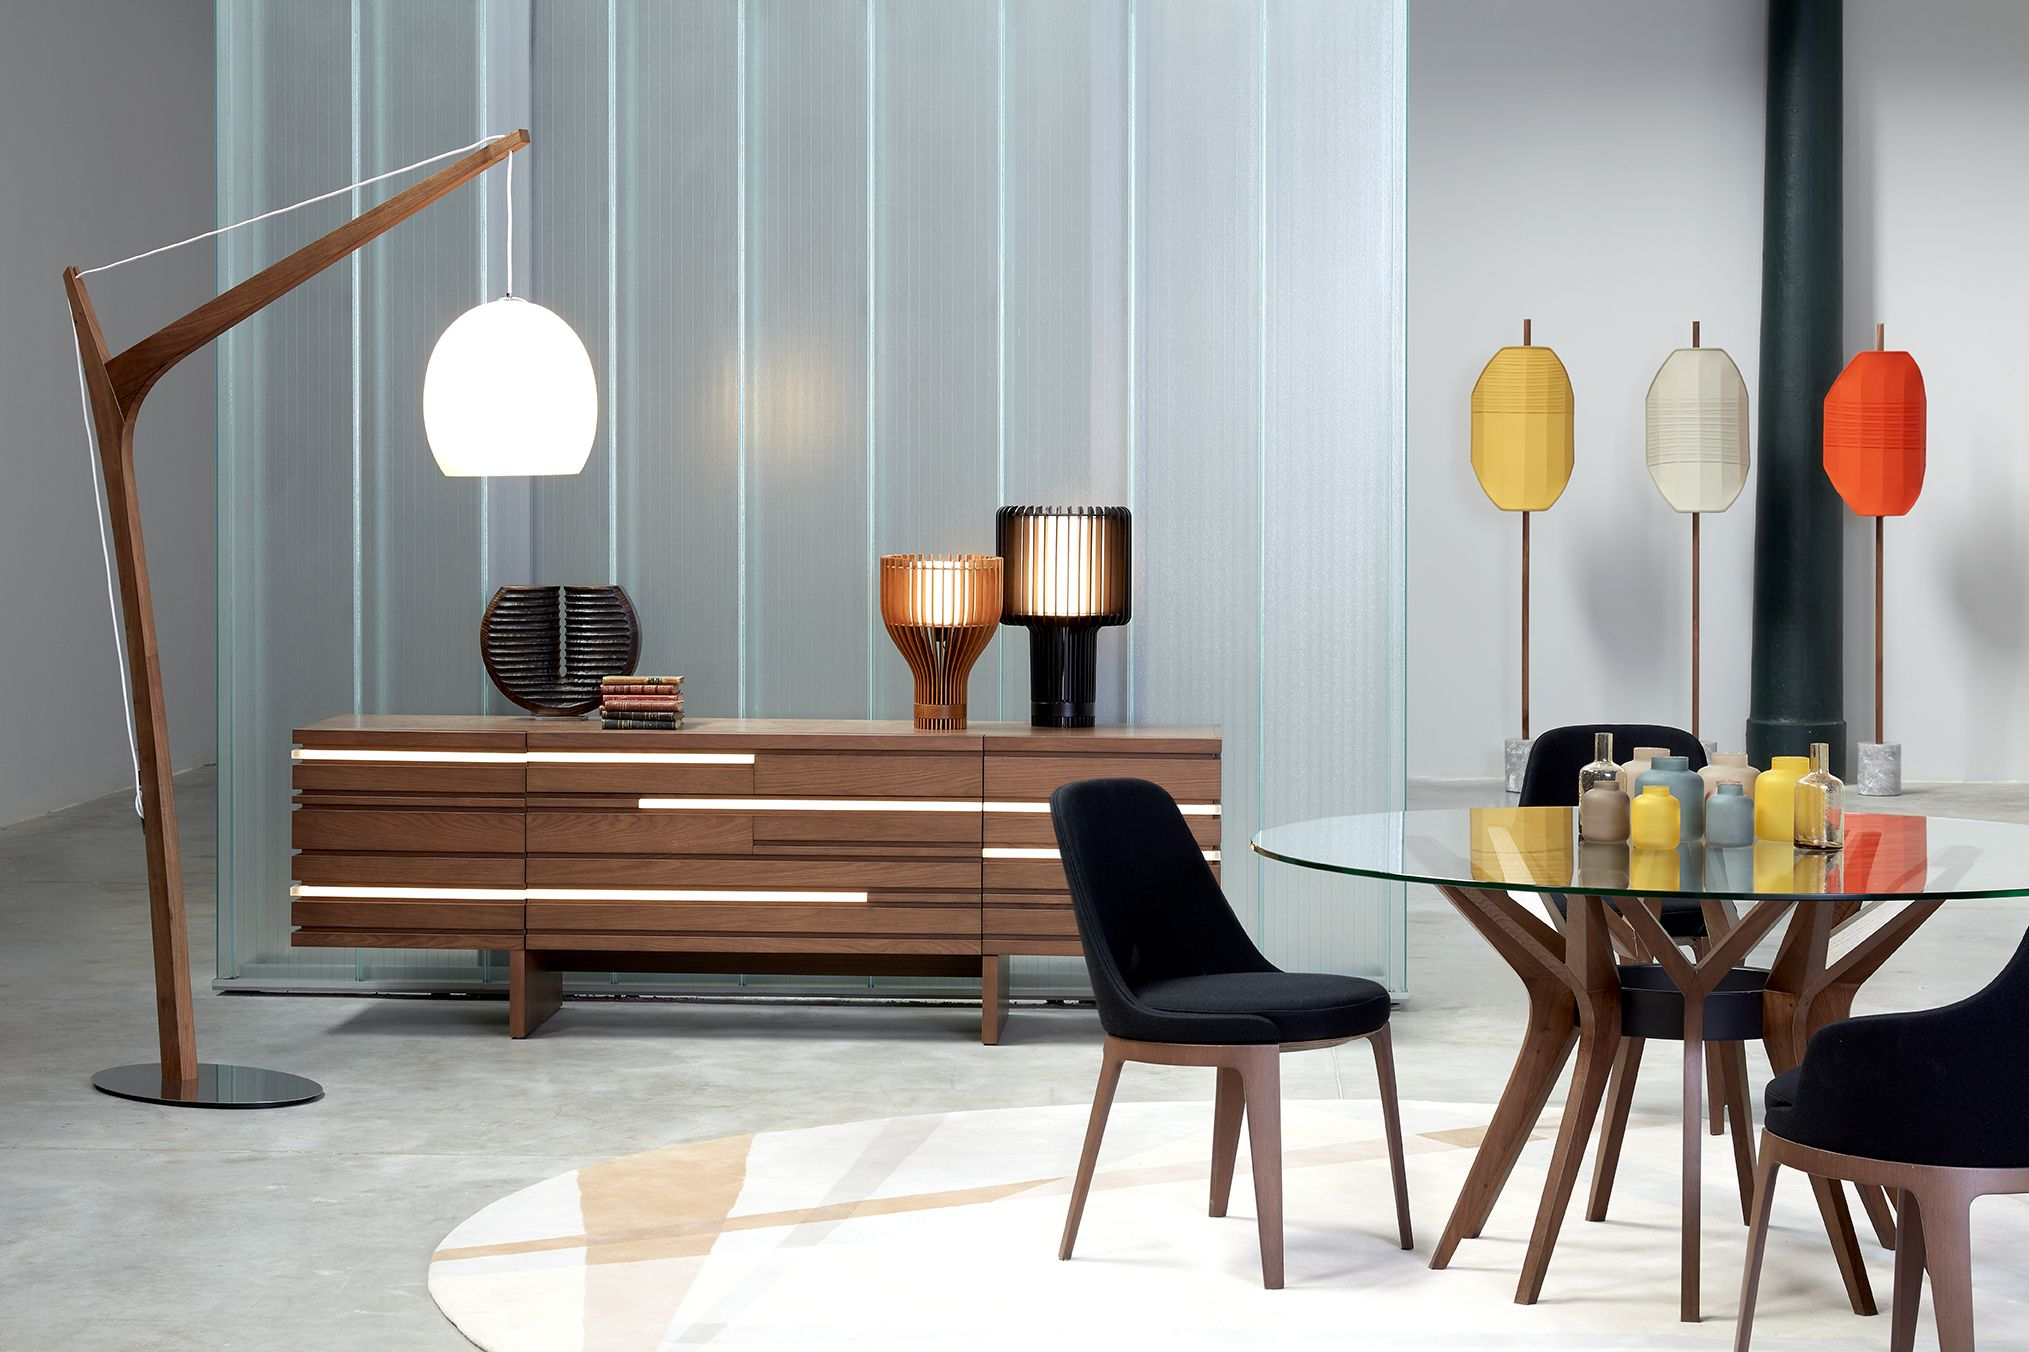 Roche Bobois Aster Dining Table Designed By Reda Amalou Layers